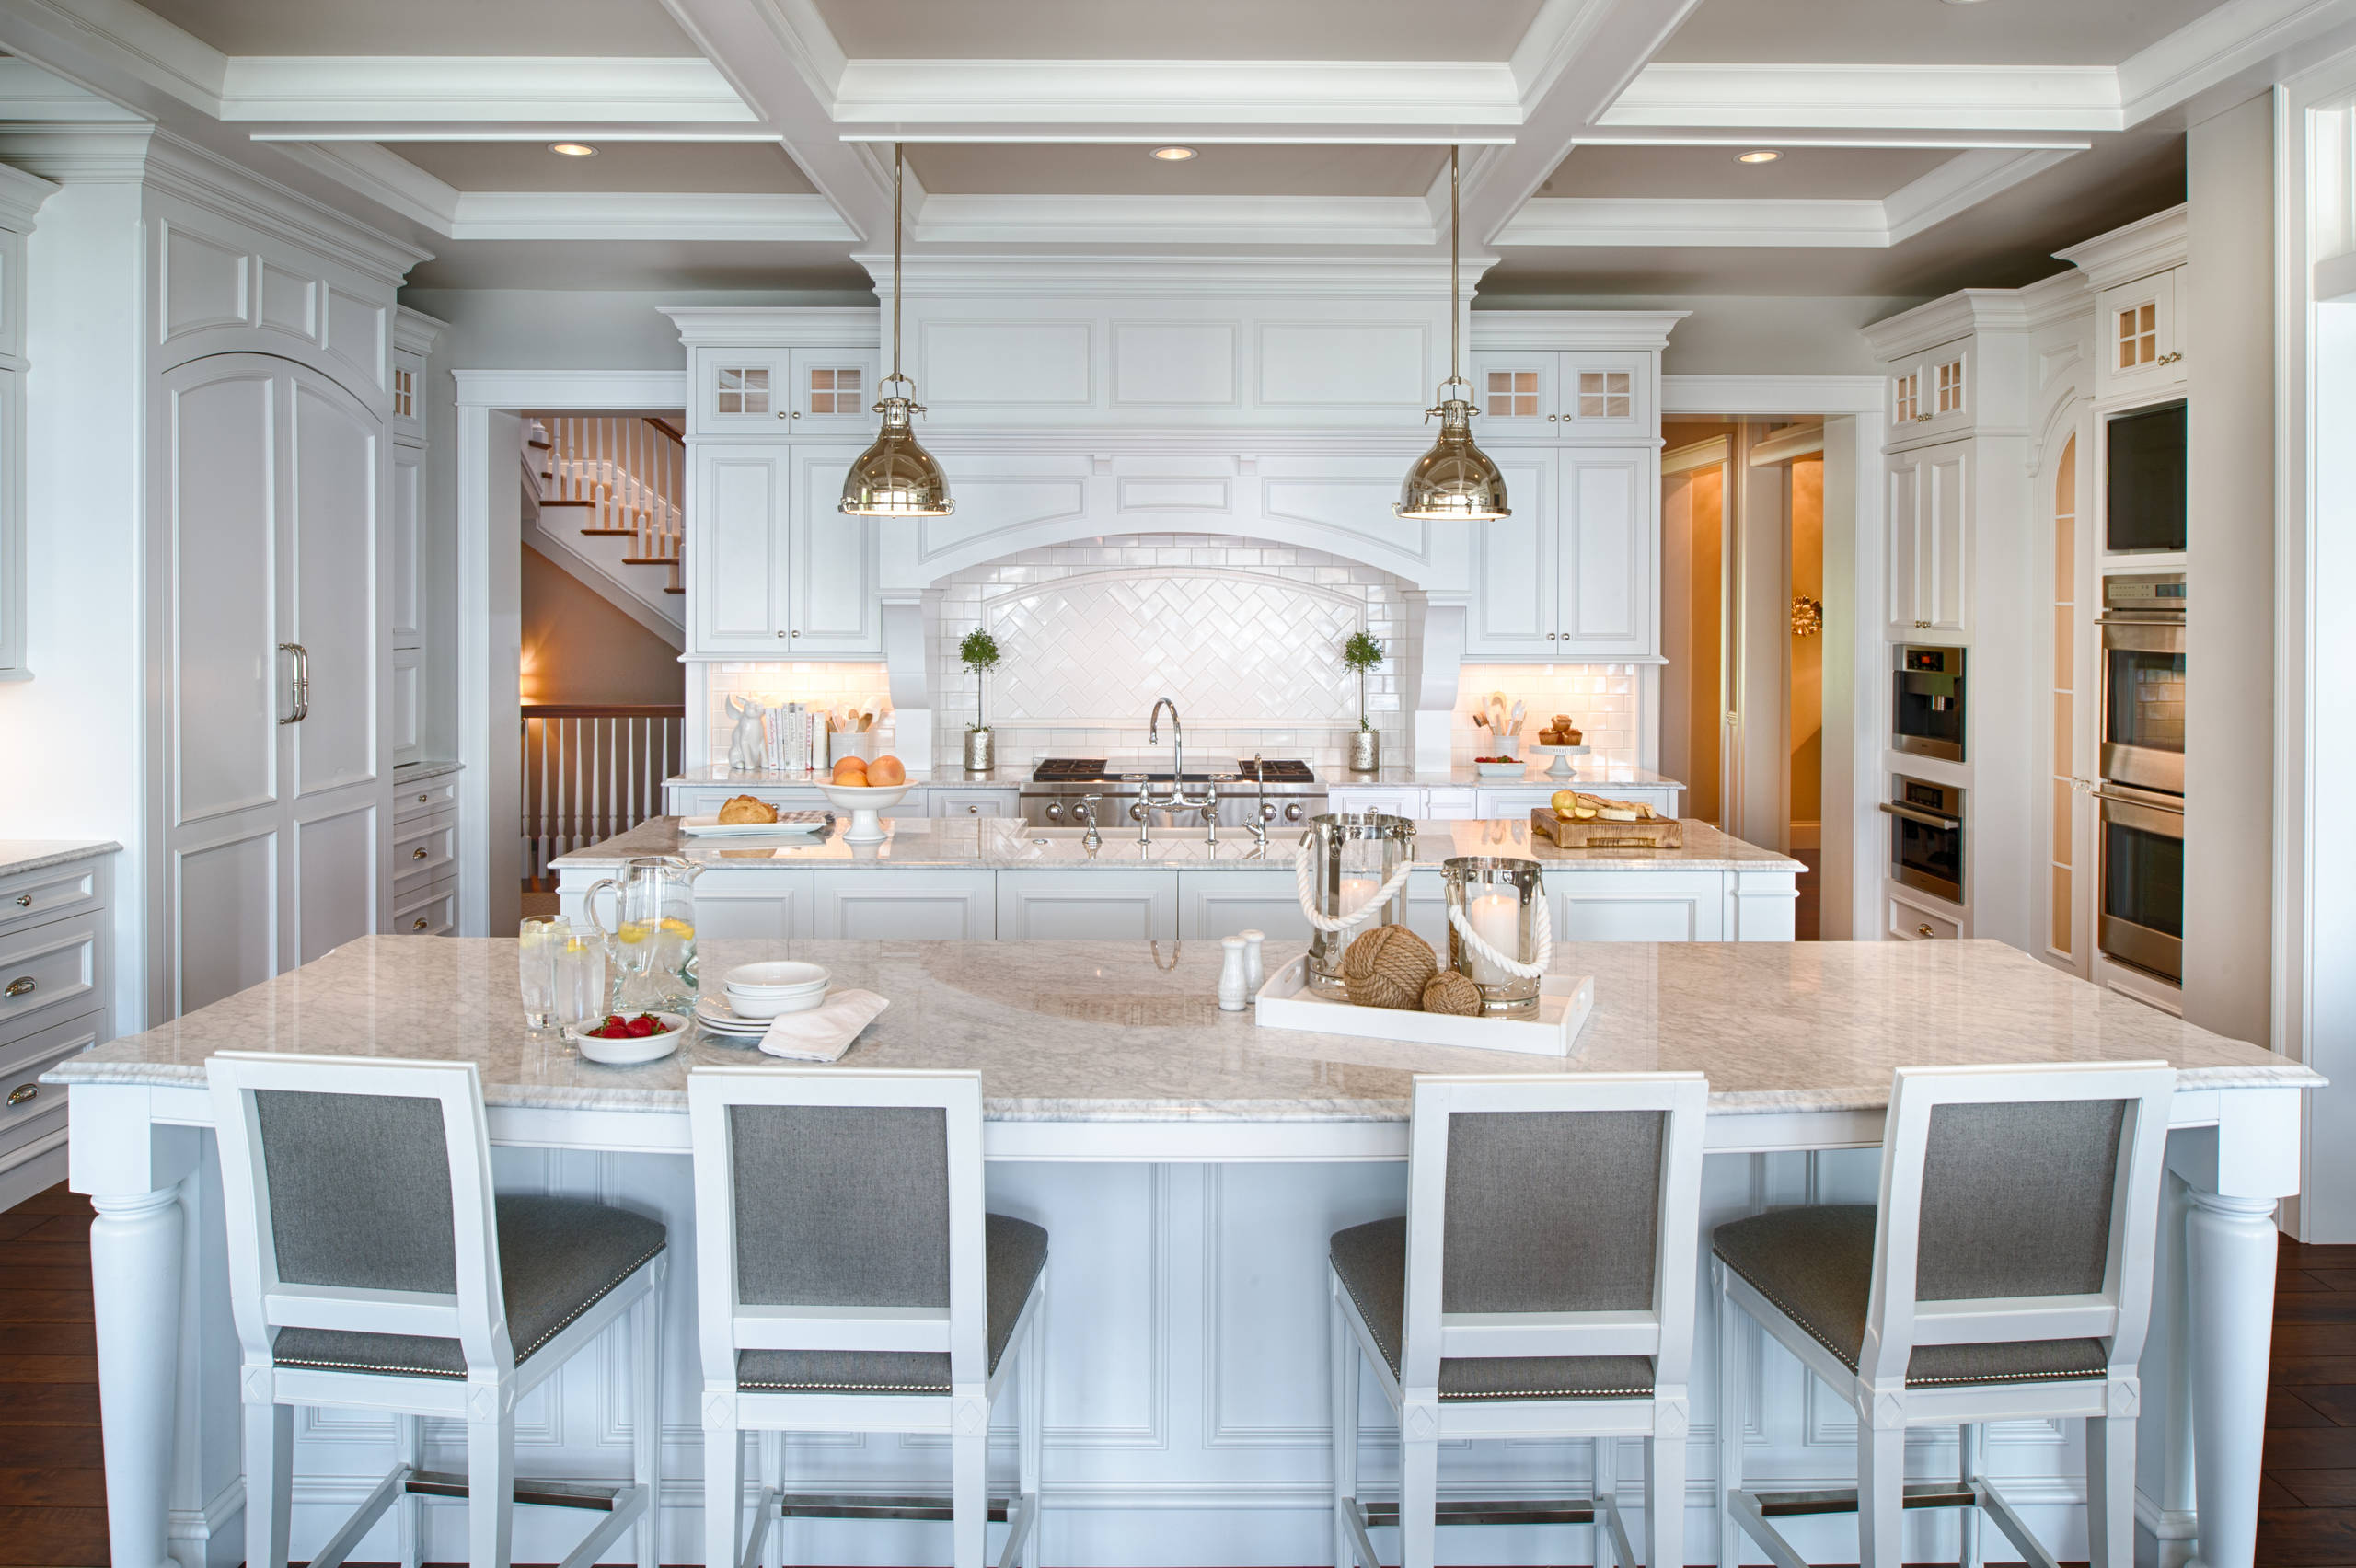 11x11 Kitchen Ideas Photos Houzz